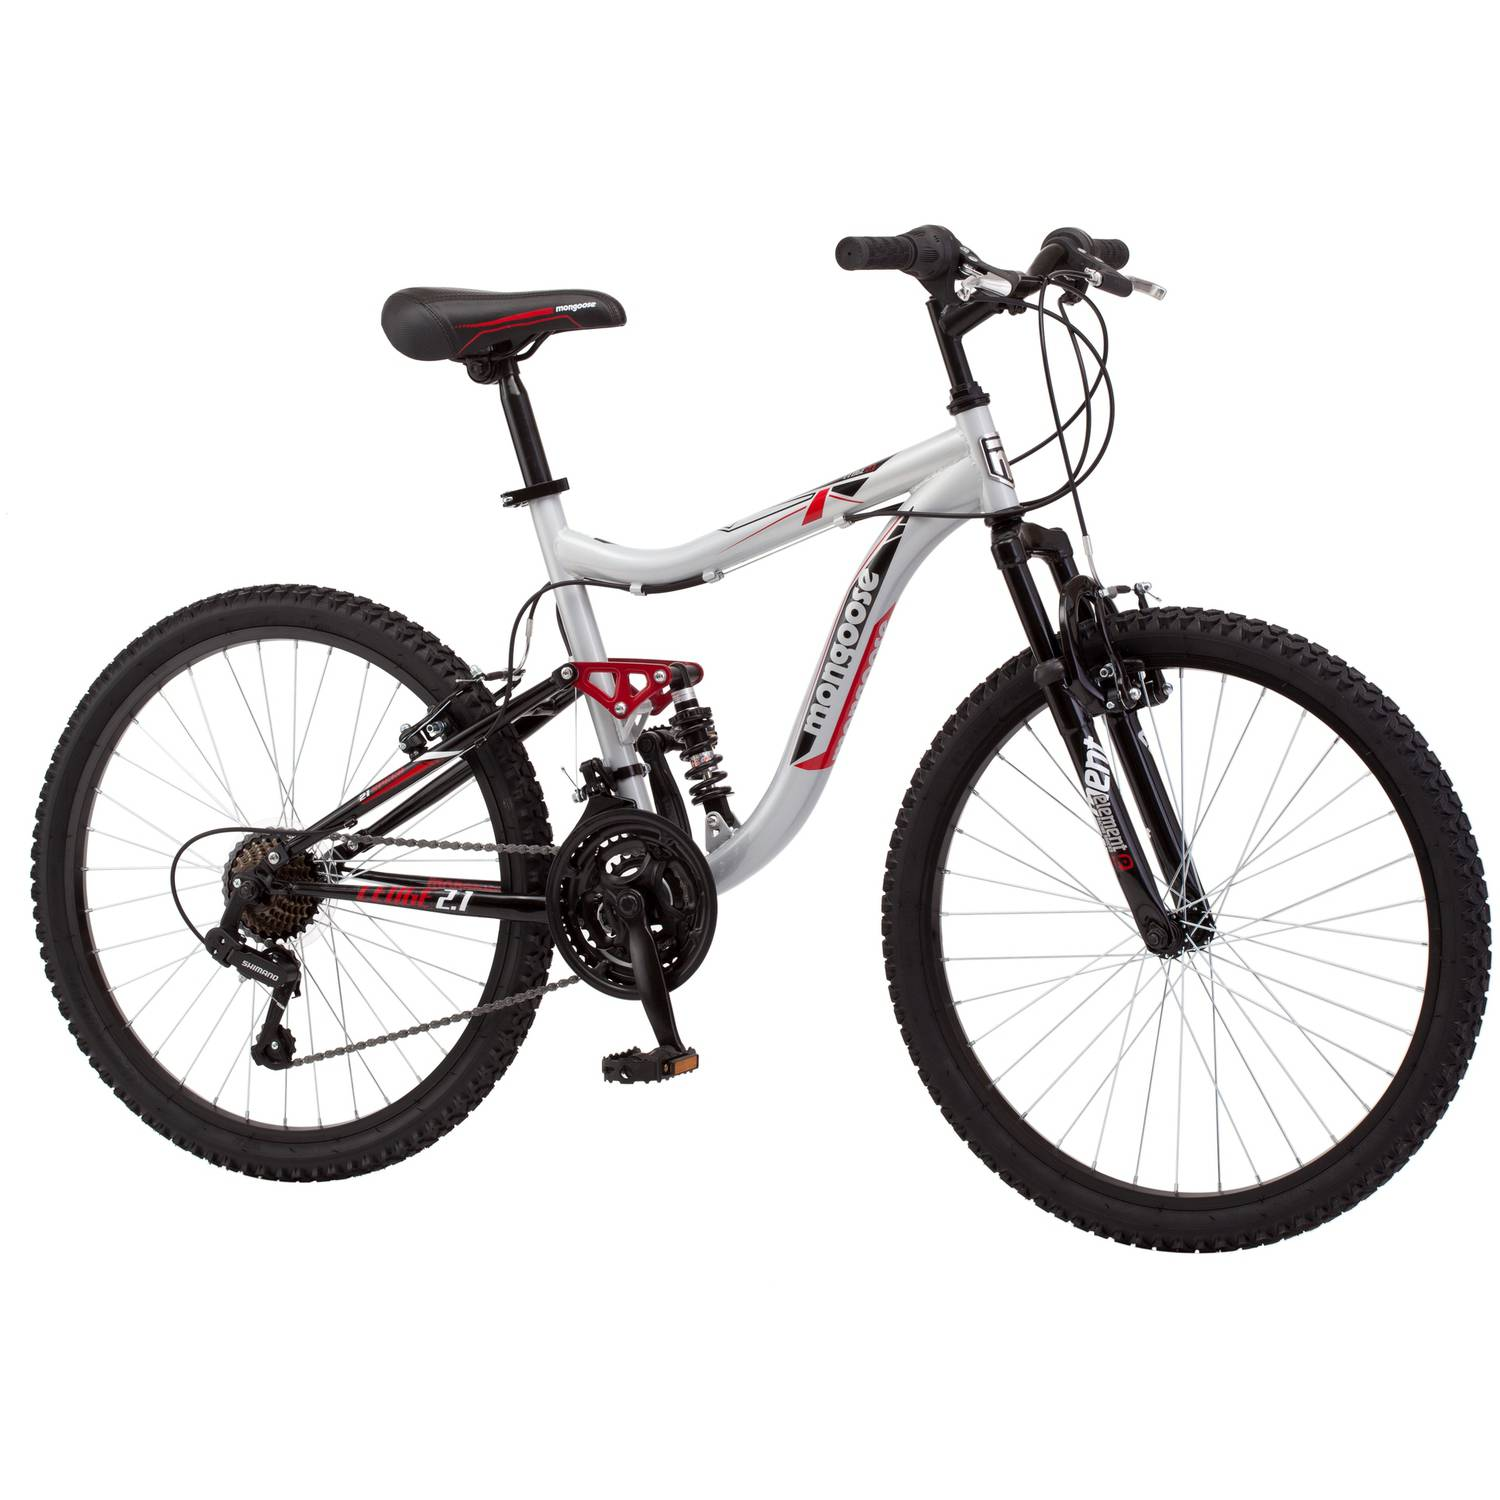 Boys mountain bike bicycle riding sports outdoor adult Outdoor bicycle